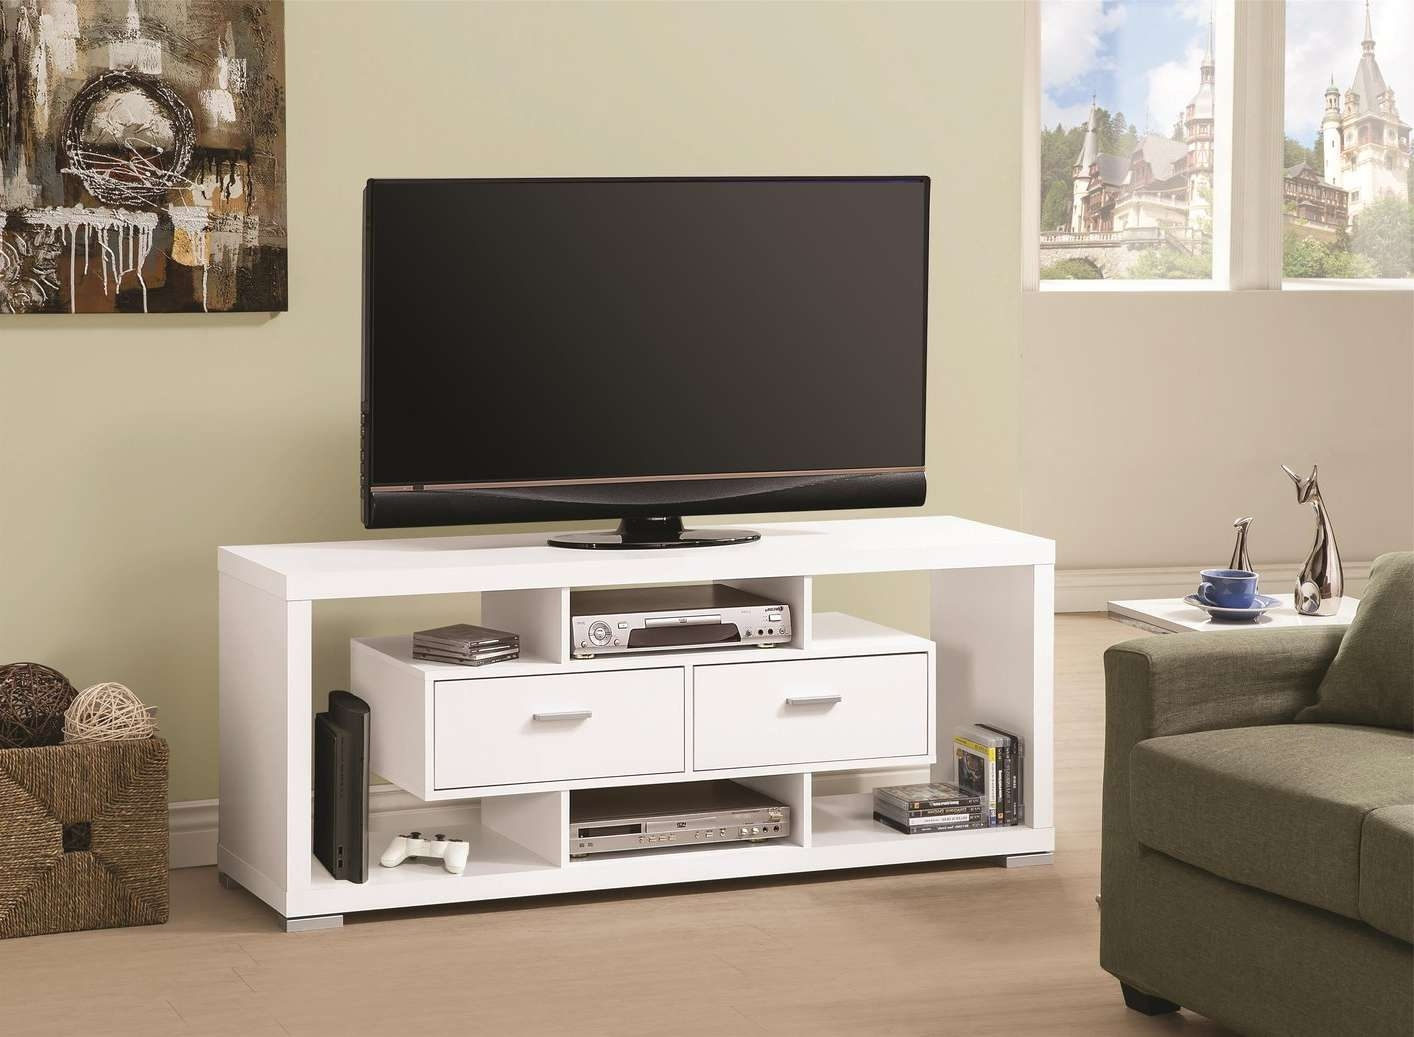 White Wood Tv Stand – Steal A Sofa Furniture Outlet Los Angeles Ca Within White Wood Tv Stands (View 6 of 15)